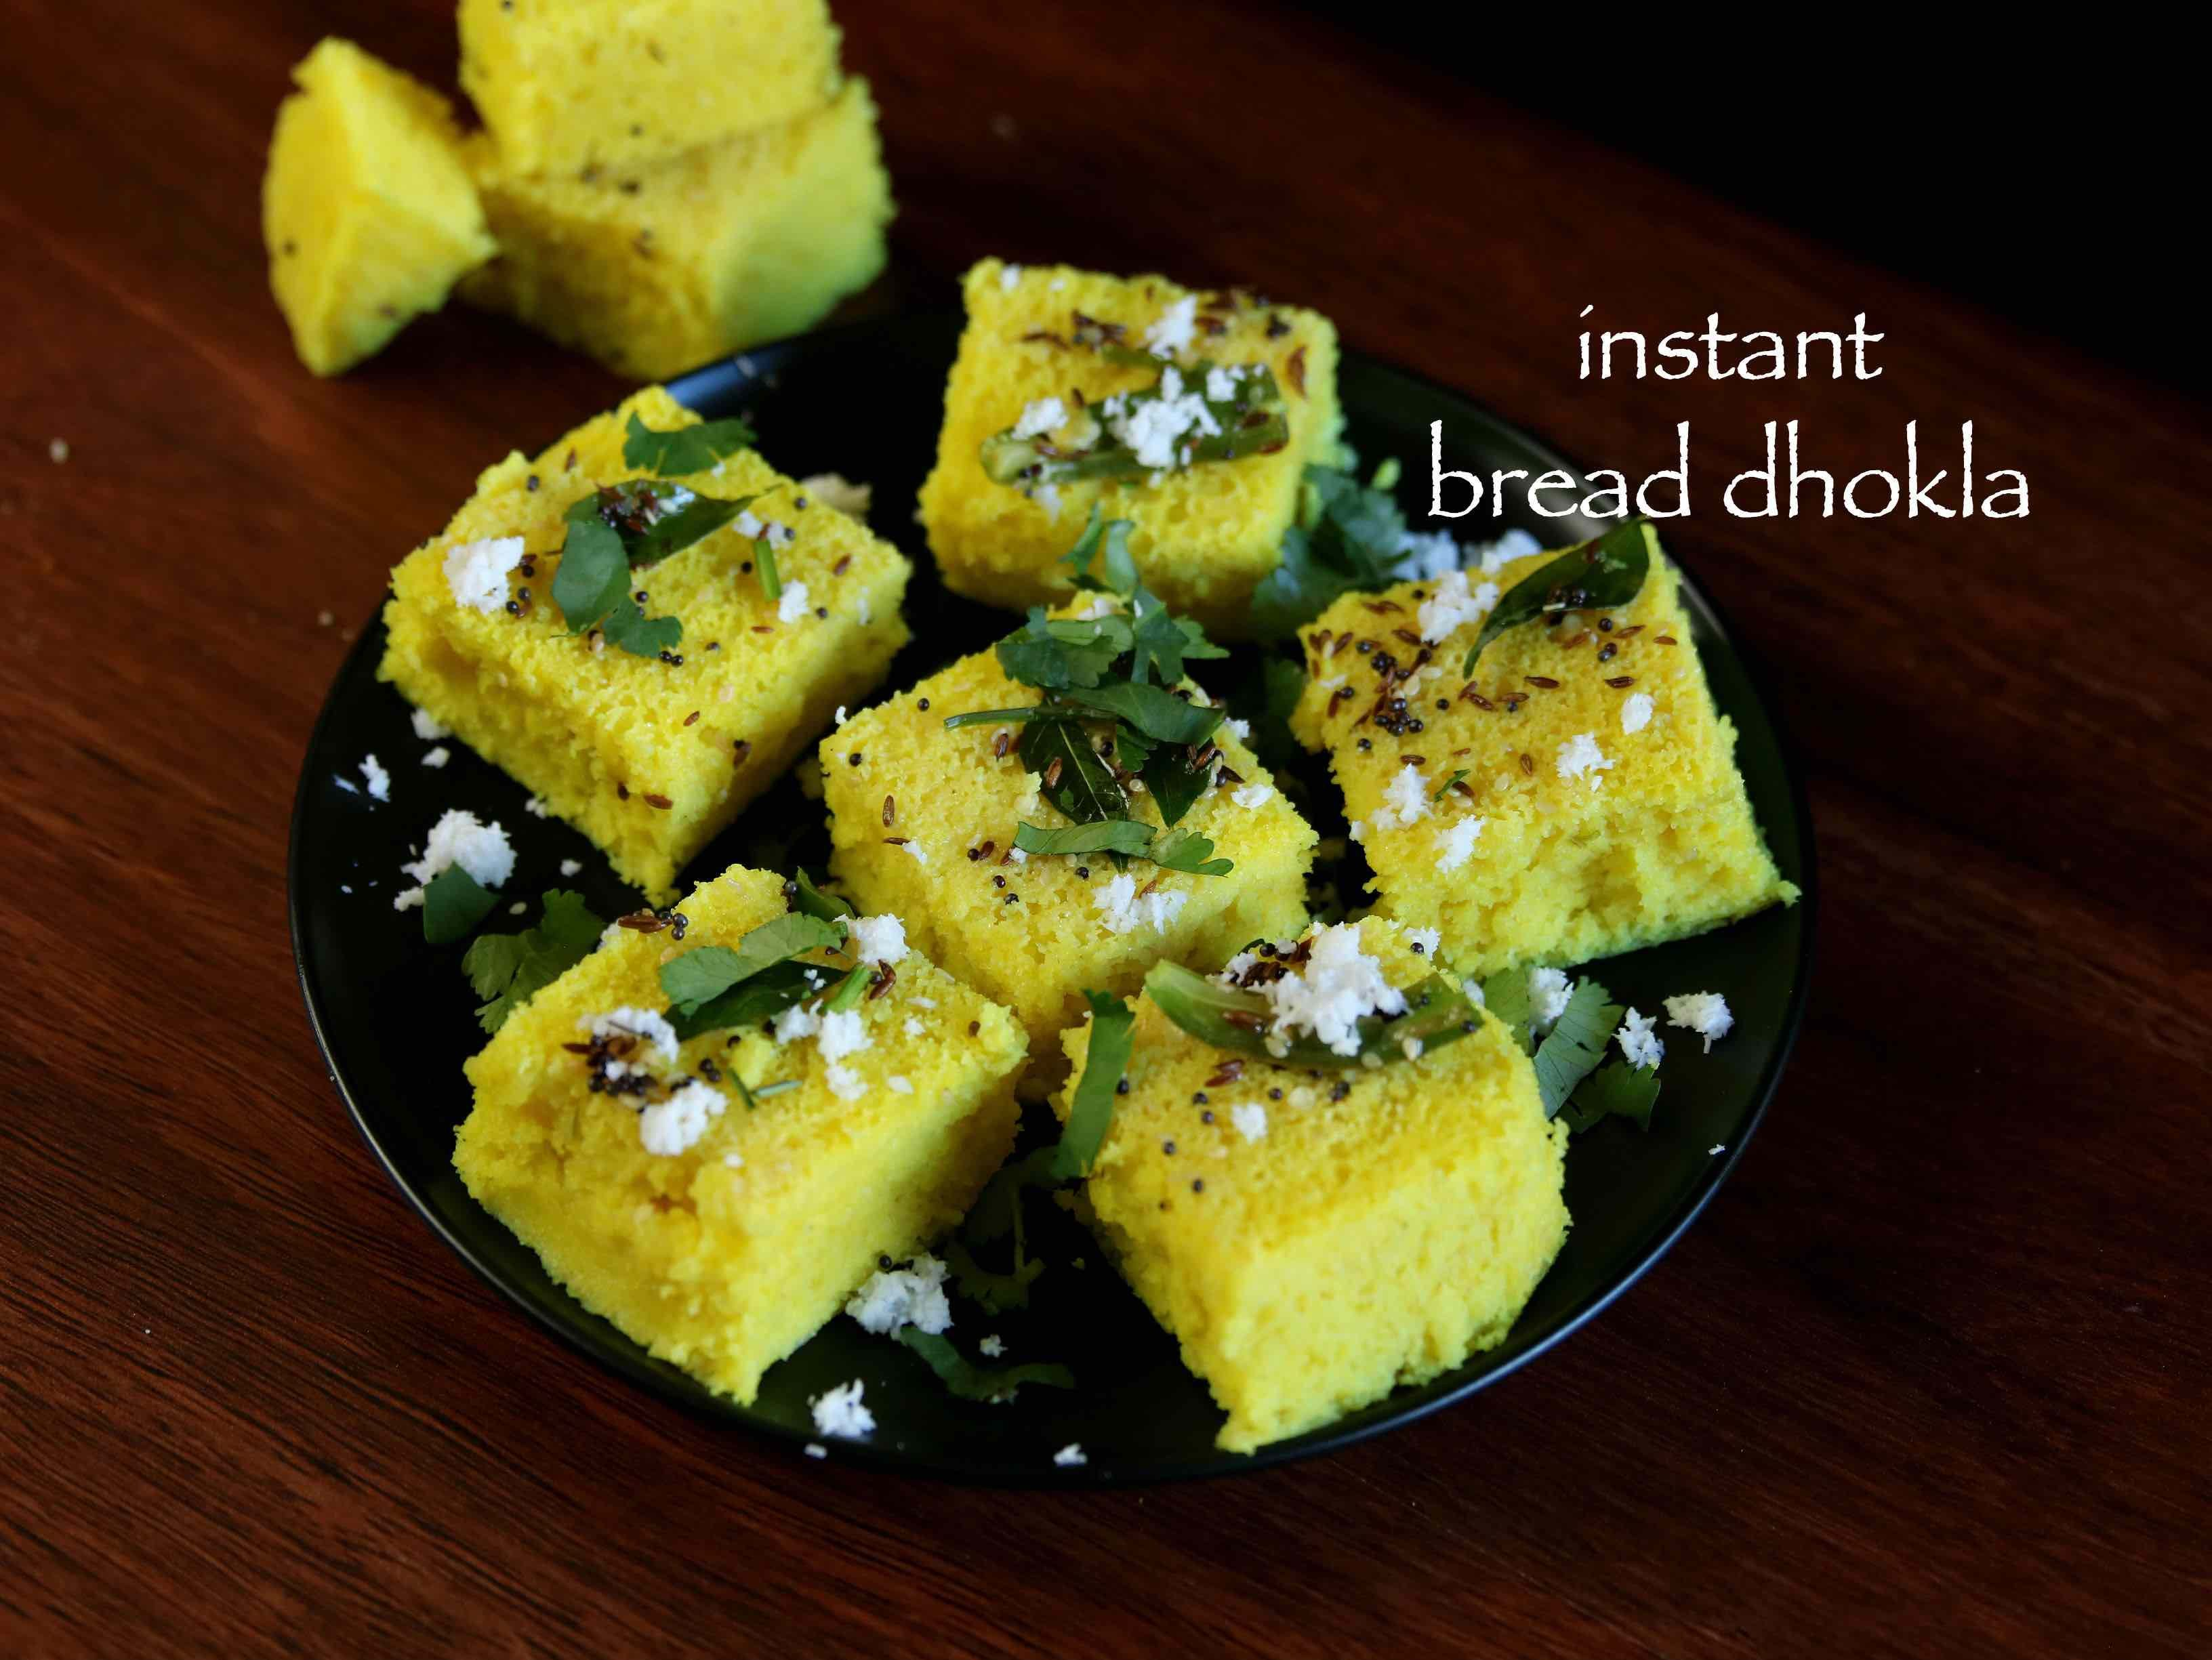 Nstant bread dhokla recipe easy bread dhoklas with step by step gujarati food forumfinder Choice Image